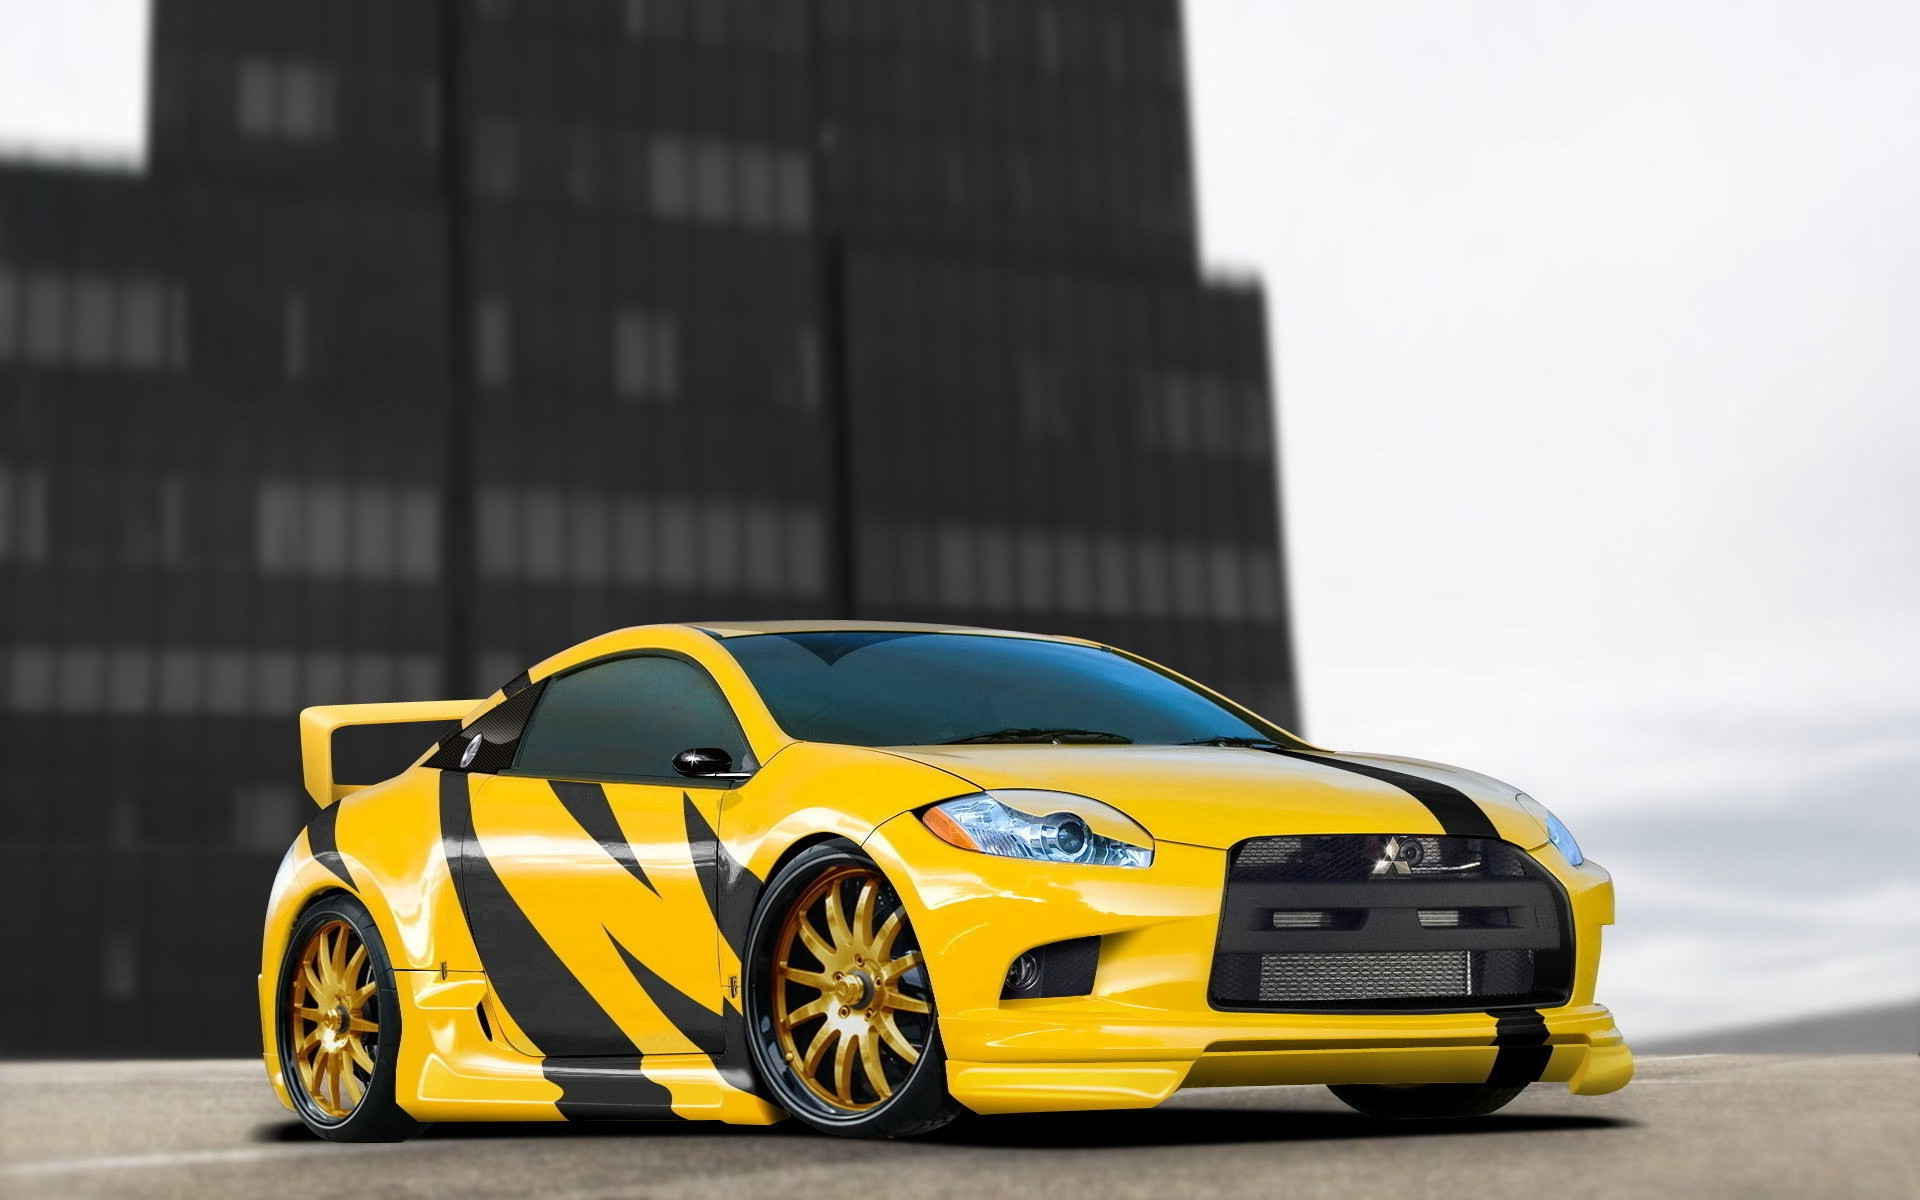 Cars tuning Mitsubishi Eclipse GT wallpaper | 1920x1200 ... Mitsubishi Eclipse 3g Wallpaper